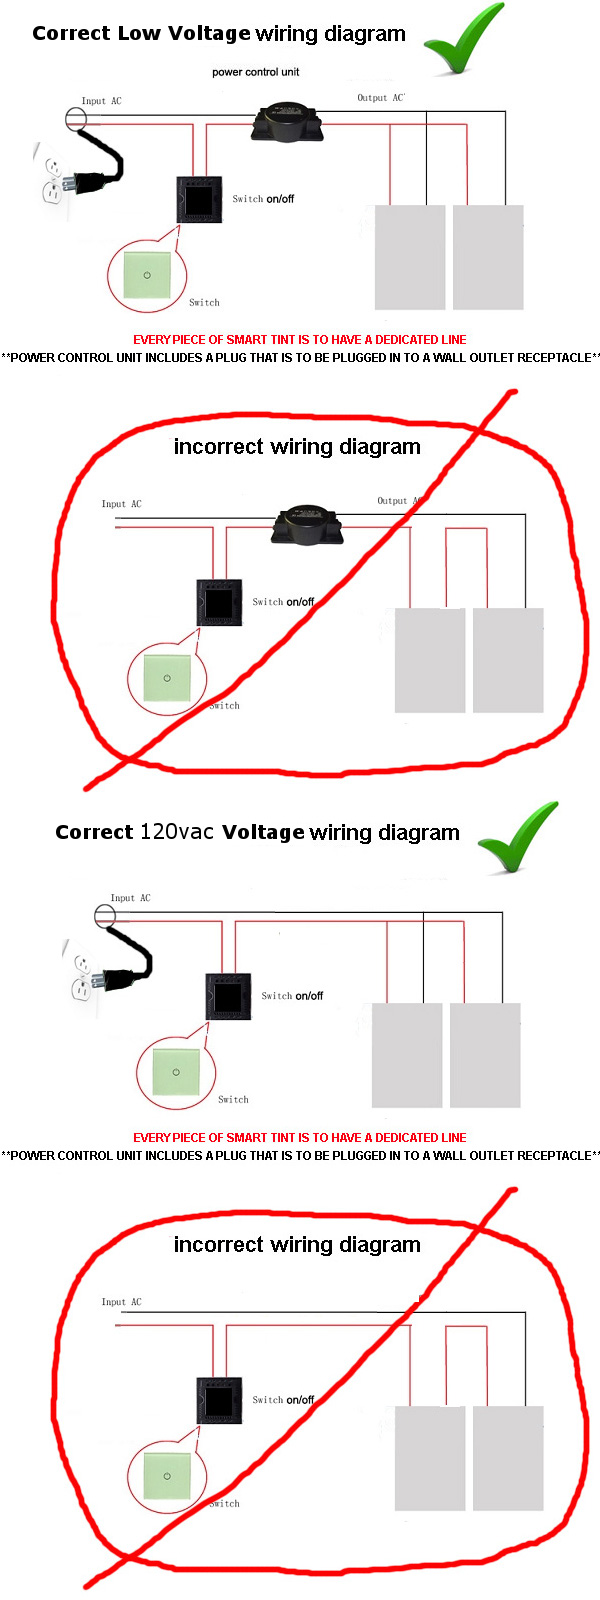 Smart_Tint_Wiring_Diagram ac low voltage wiring diagram air conditioner schematic wiring Wire Harness Assembly at virtualis.co